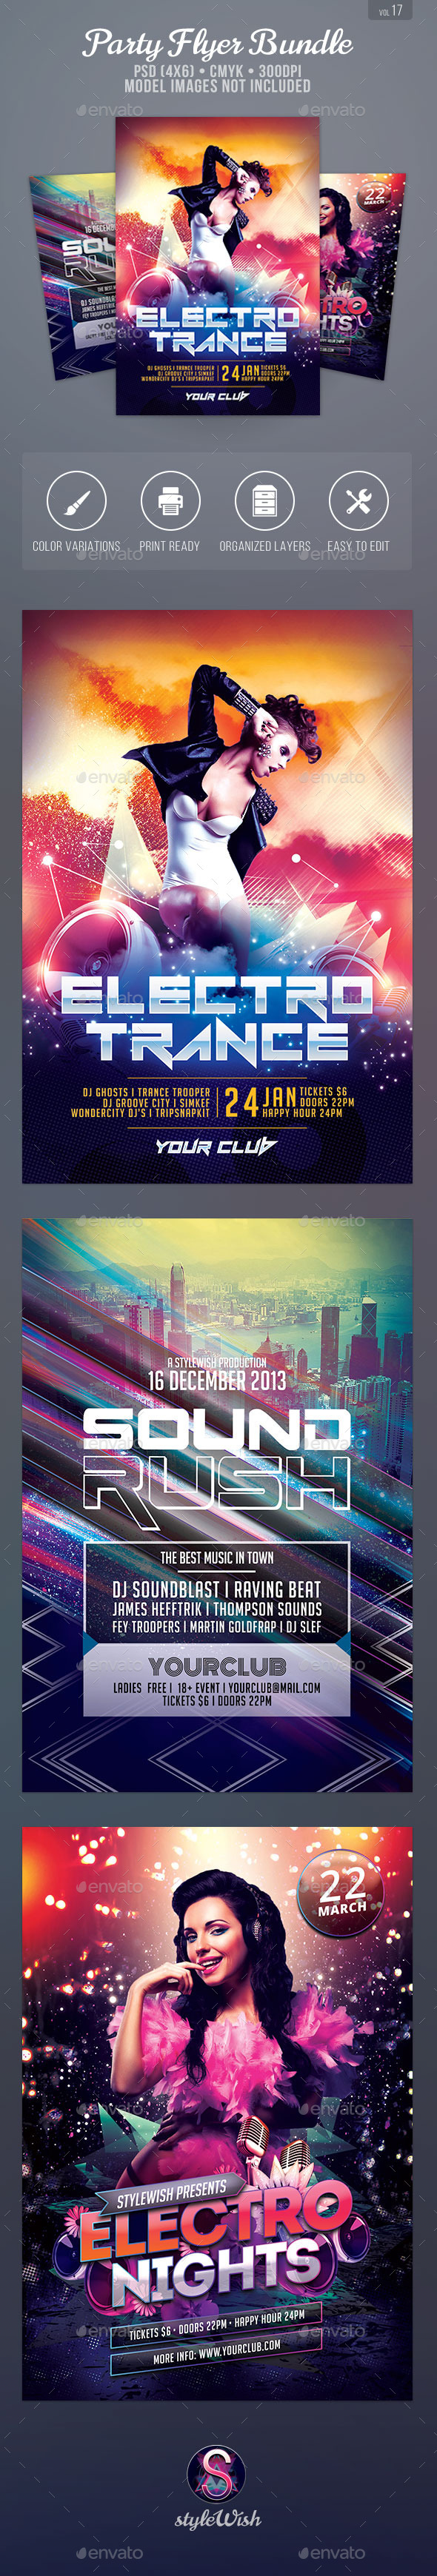 Party Flyer Bundle Vol.17 - Clubs & Parties Events